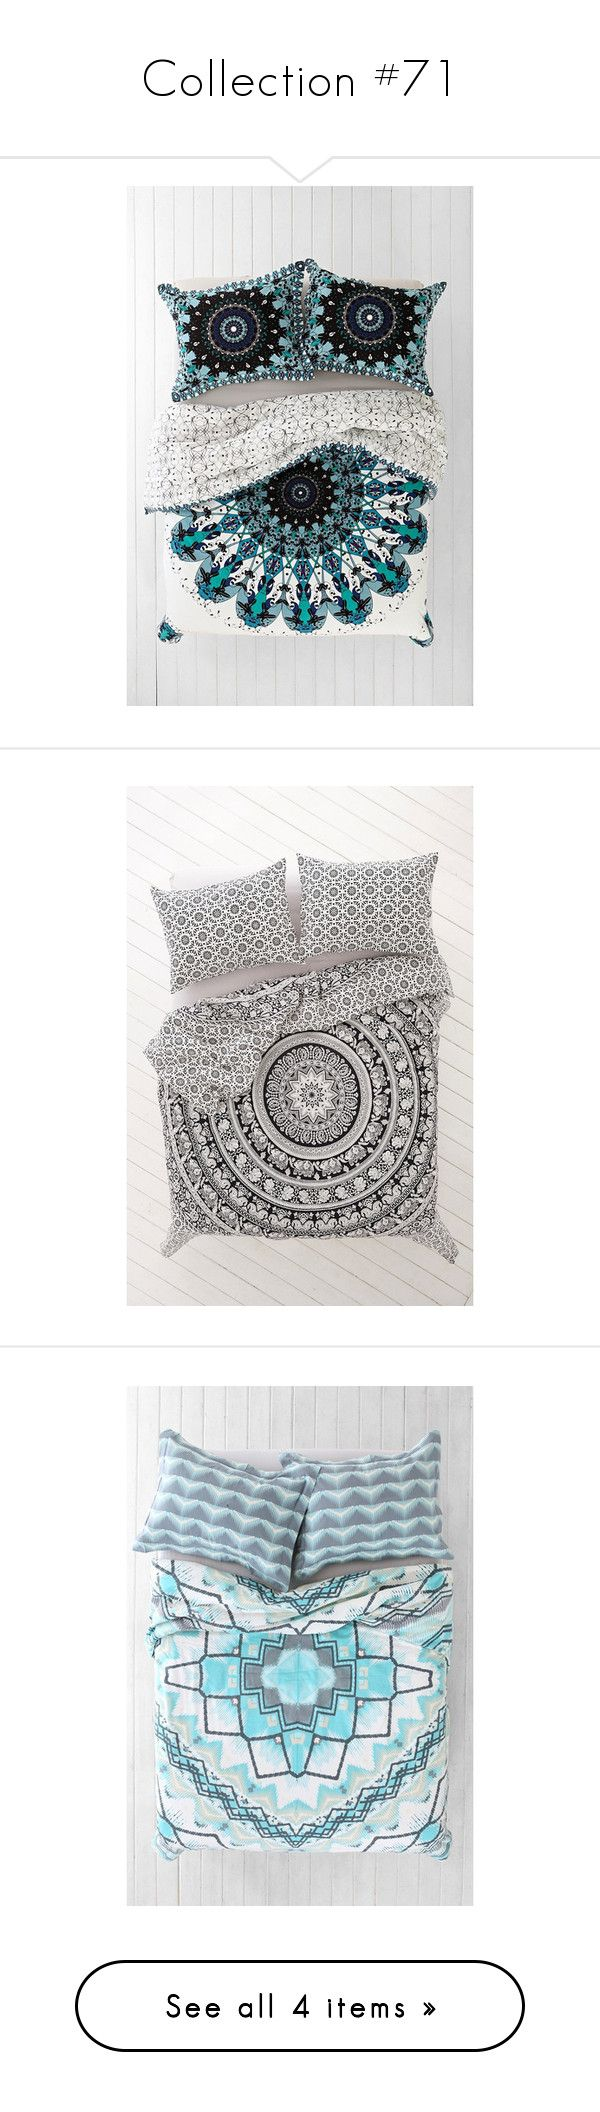 """""""Collection #71"""" by mindlessforeva on Polyvore featuring home, bed & bath, bedding, duvet covers, twin xl bedding, king size bedding, twin extra long bedding, king duvet insert, king bedding and boho bedding"""